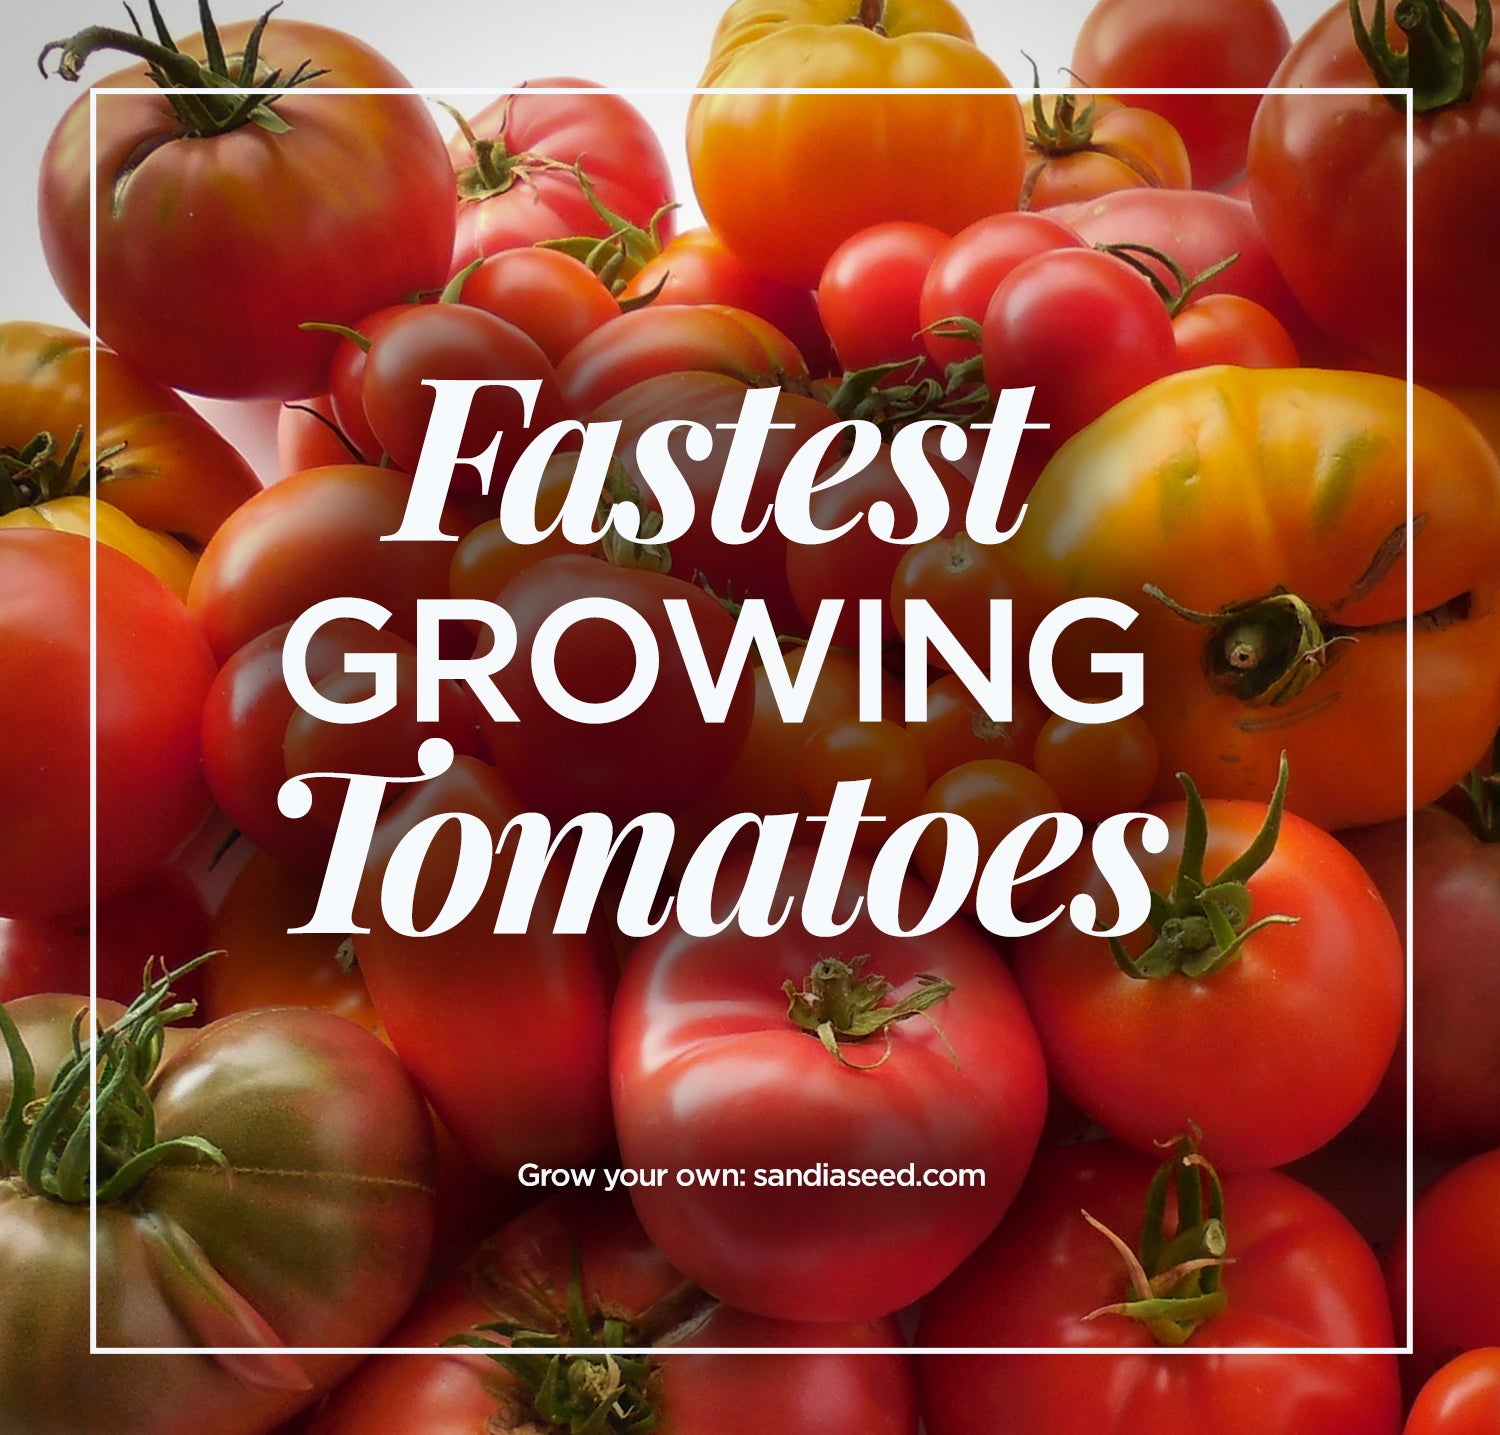 Fastest Growing Tomatoes